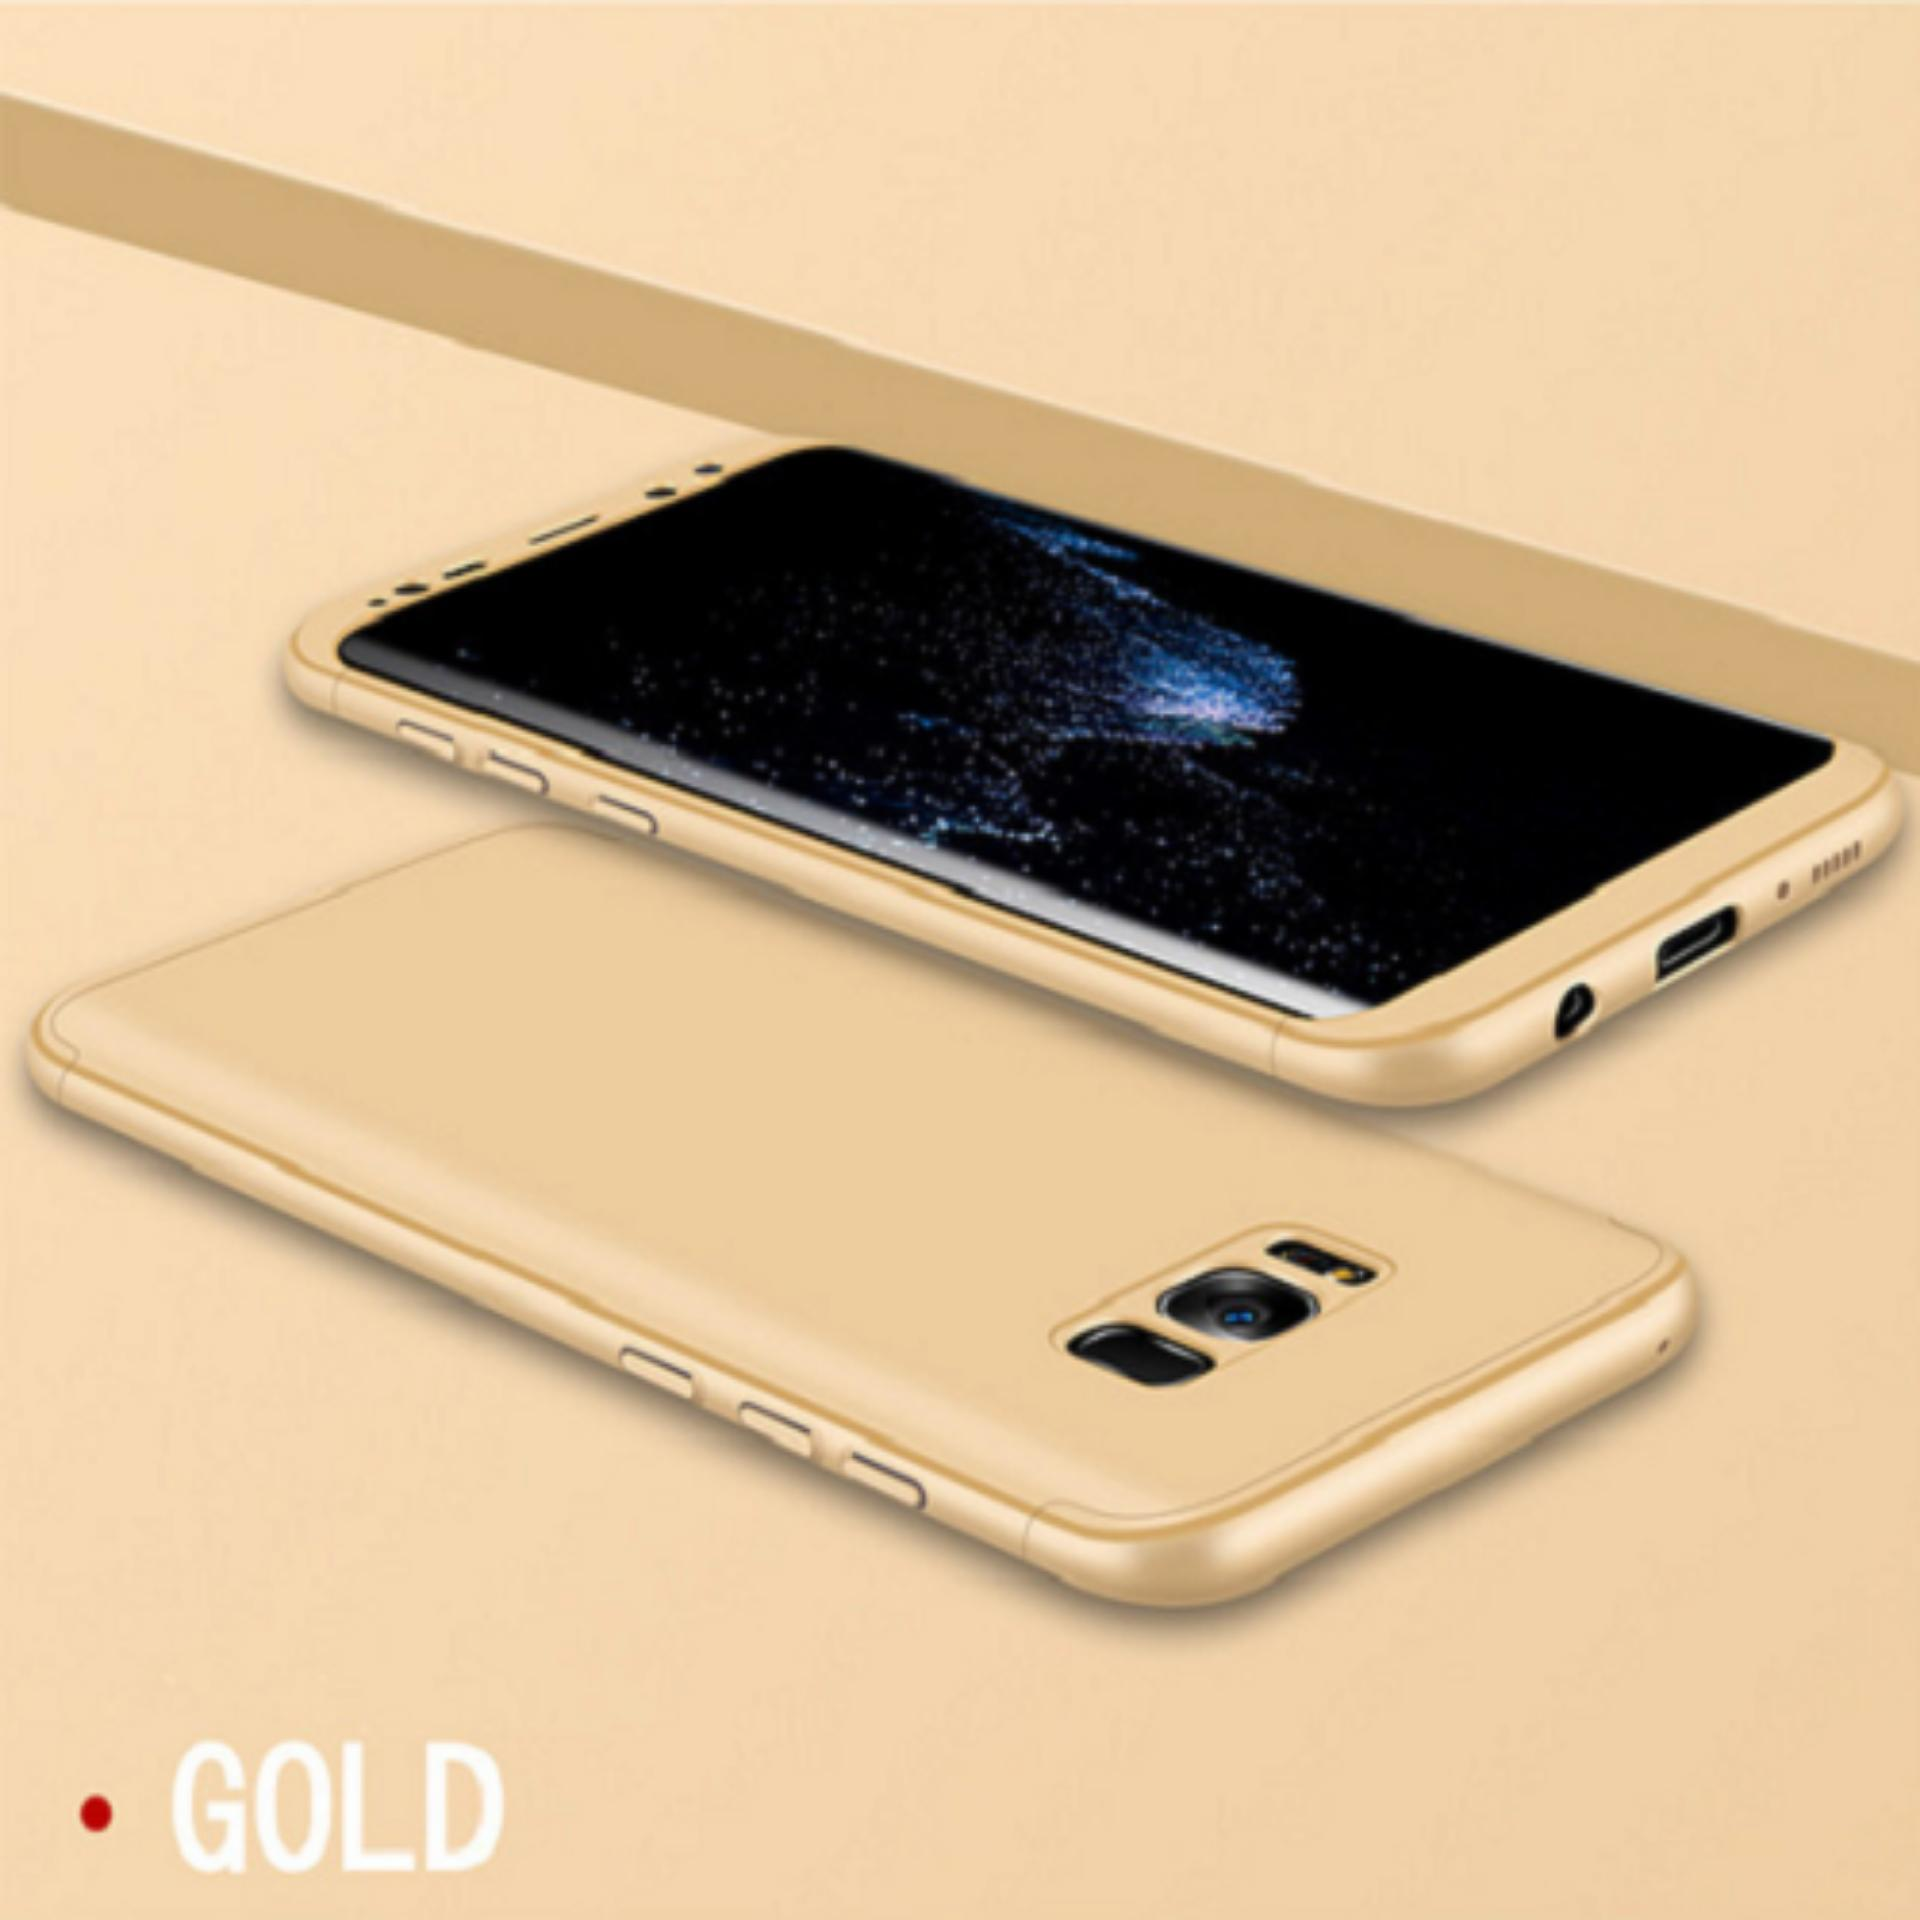 Samsung J5 2016 Two Side Protection Tpu Case Crystal Clear Softcase 360 Full Cover Iphone 7g Plus Softshell Slim Matte Untuk A5 2017 A520 Gold